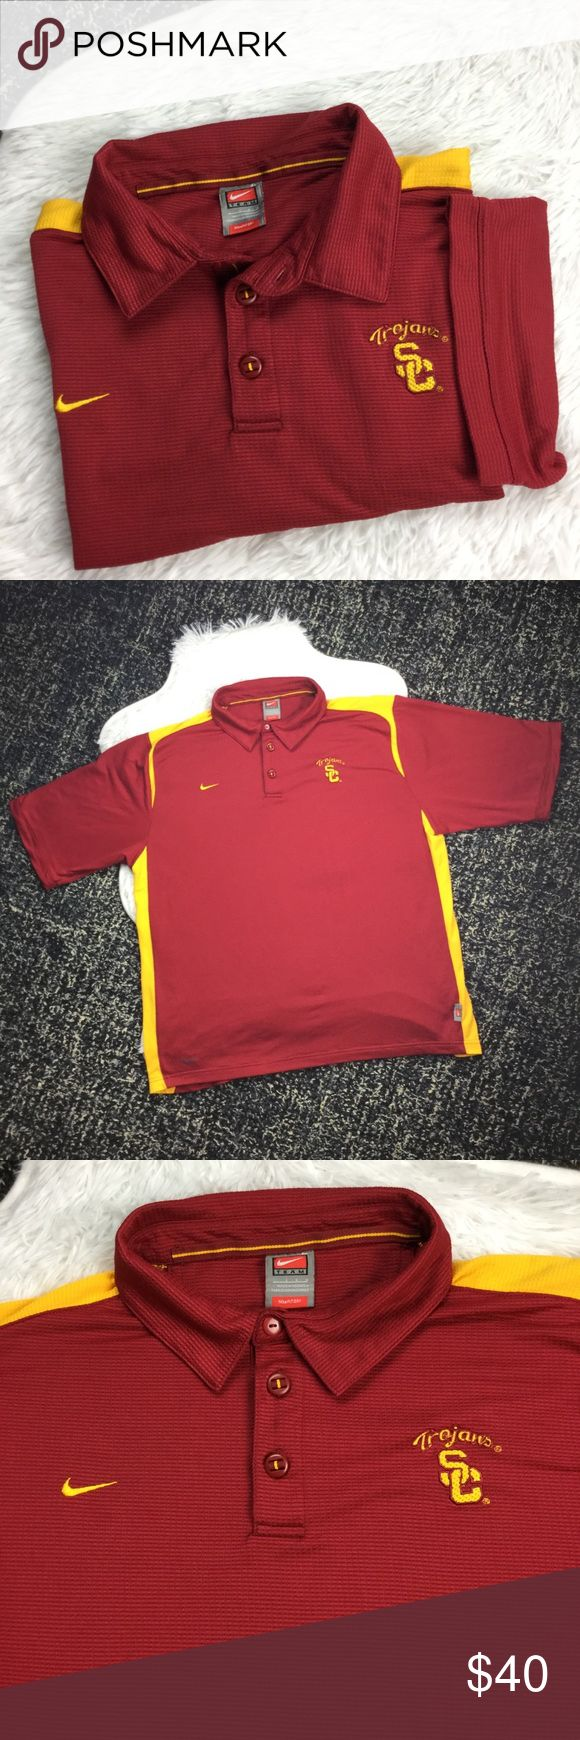 """NIKE Team Fit Dry USC Trojans Embroidered Polo Nike Team Fit Dry USC Embroidered Polo Shirt, Sz Large. Textured with three button closure. Nice embroidery details on front & back, great for game day! Has one tiny pinhole under a sleeve, not noticeable unless stretched. Measurements flat—chest: about 24.25"""", length: about 27.25"""". Smoke free home. No trades, please. Nike Shirts Polos"""